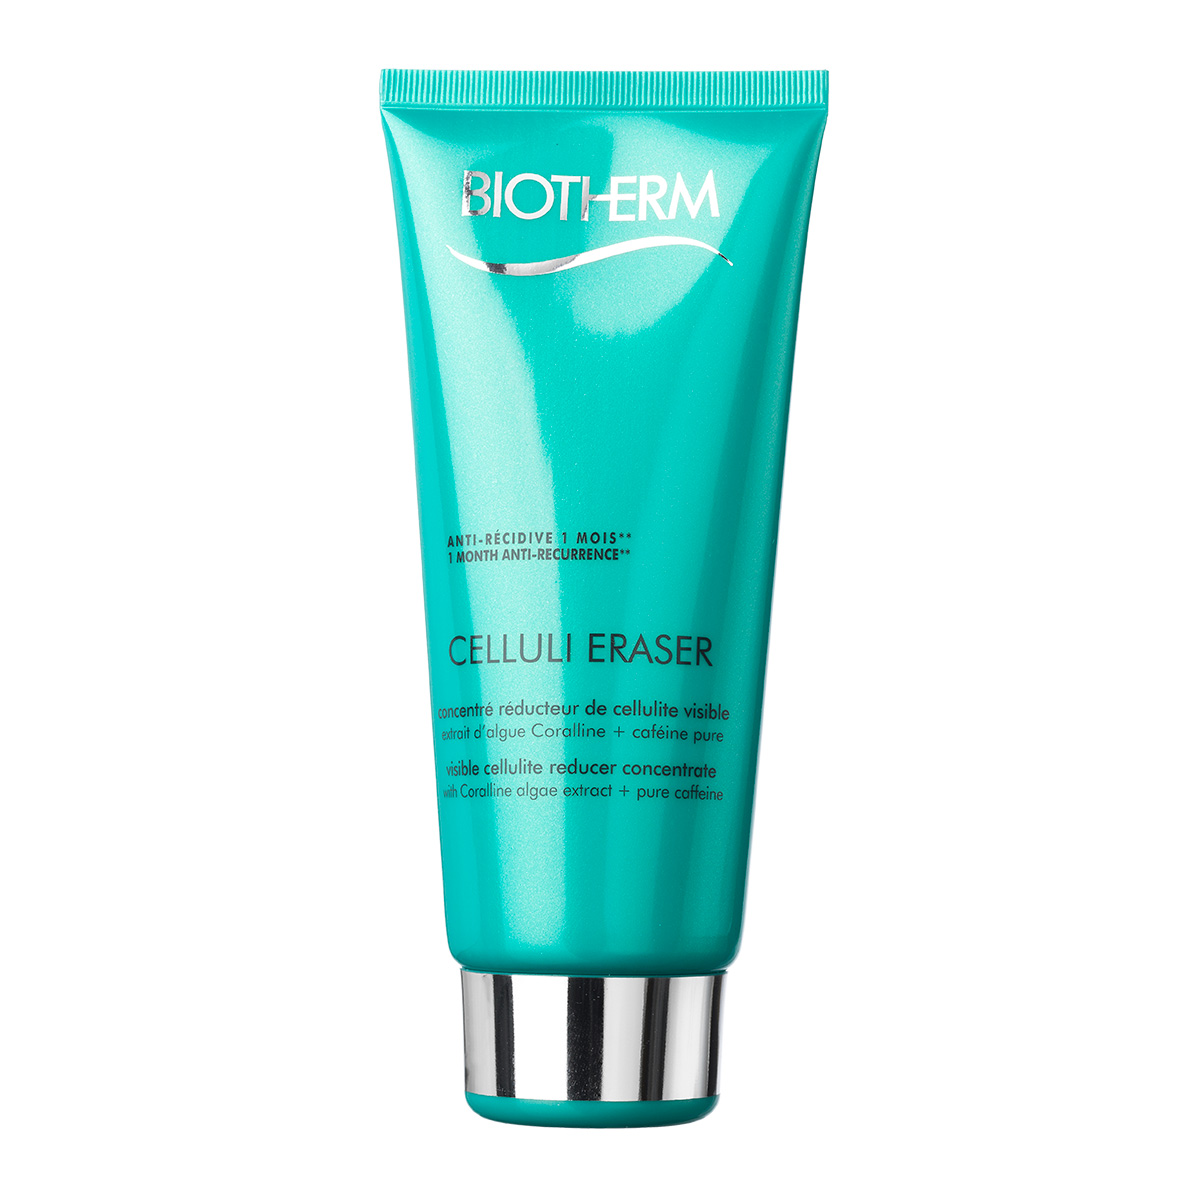 Biotherm Celluli Eraser 200 ml Anti-cellulitis creme til alle hudtyper